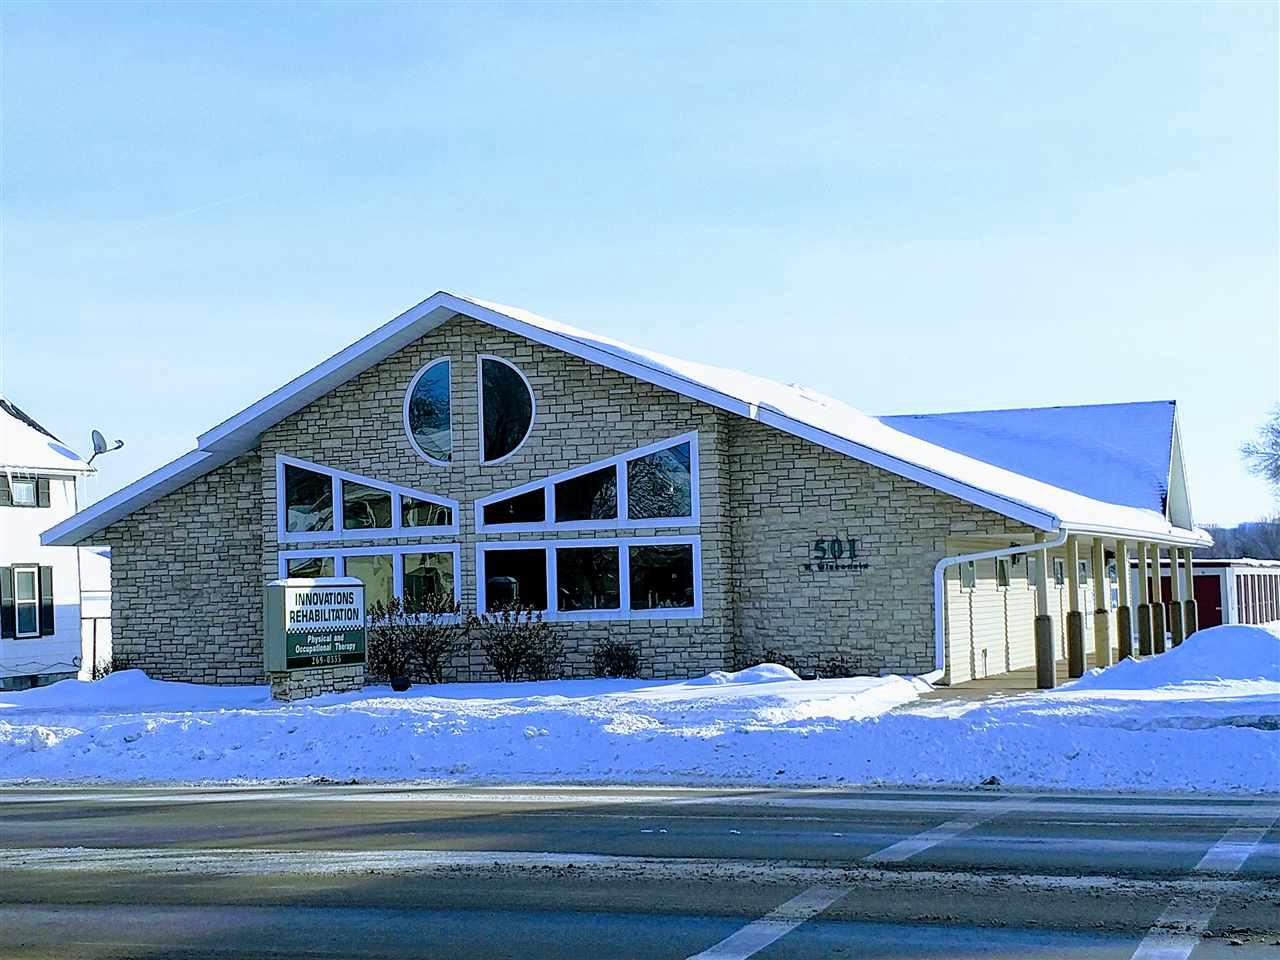 Commercial Property For Sale In Sparta WI • Realty